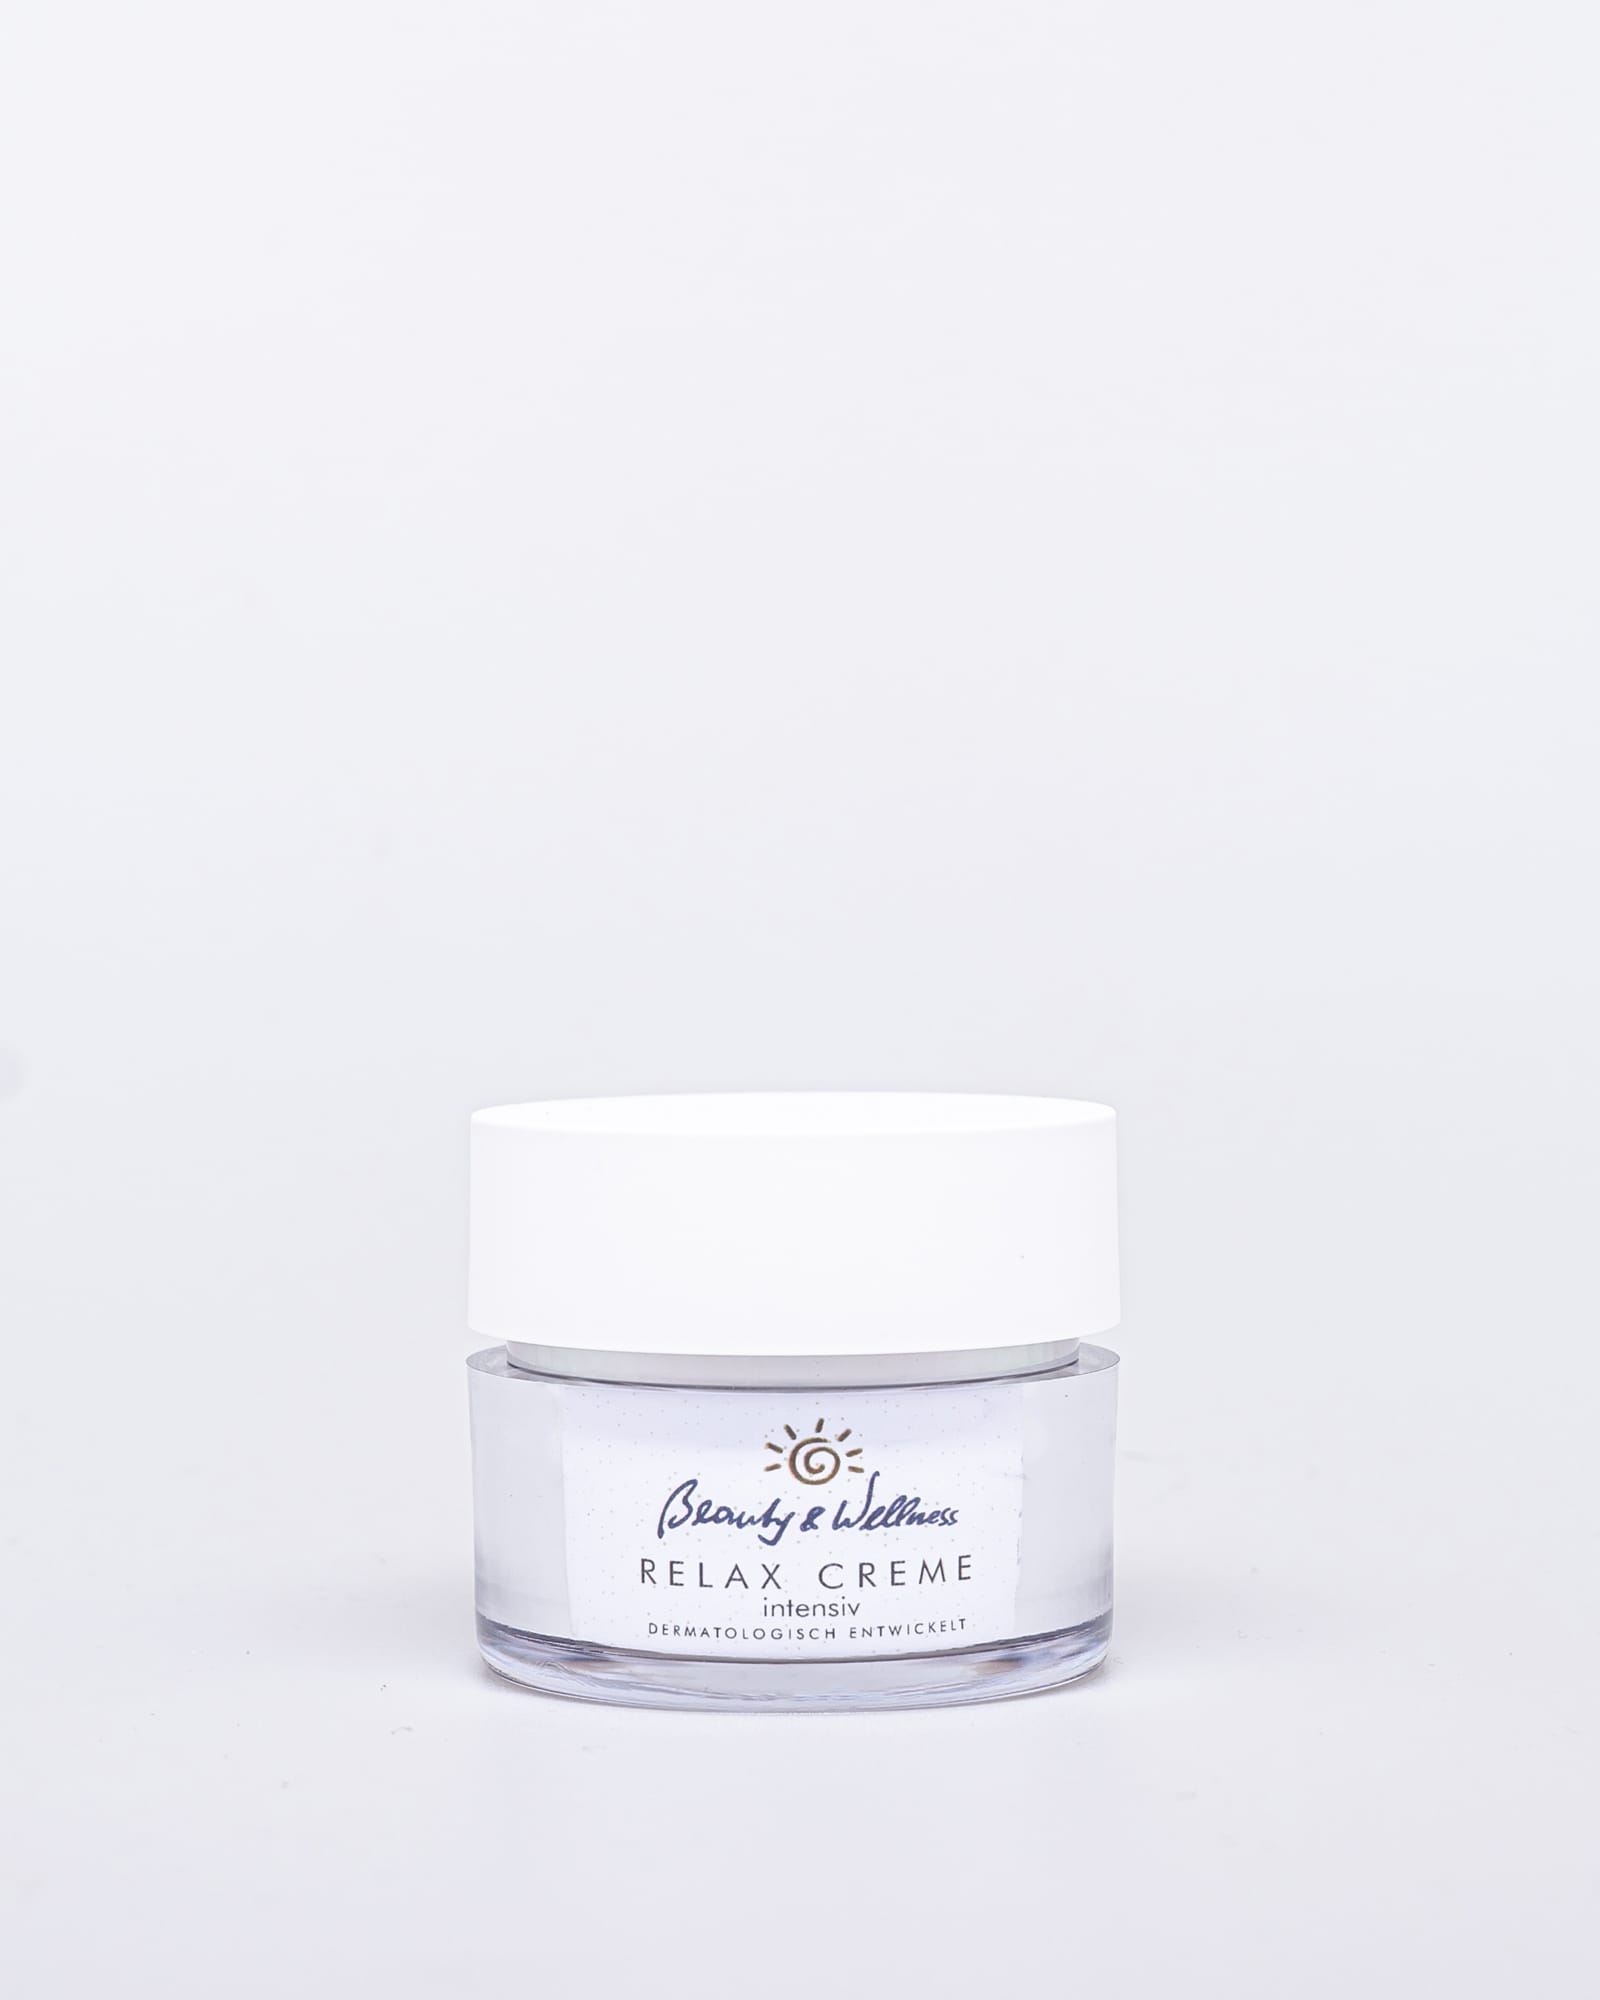 Relax Creme intensiv 50ml Tiegel Beauty Wellness